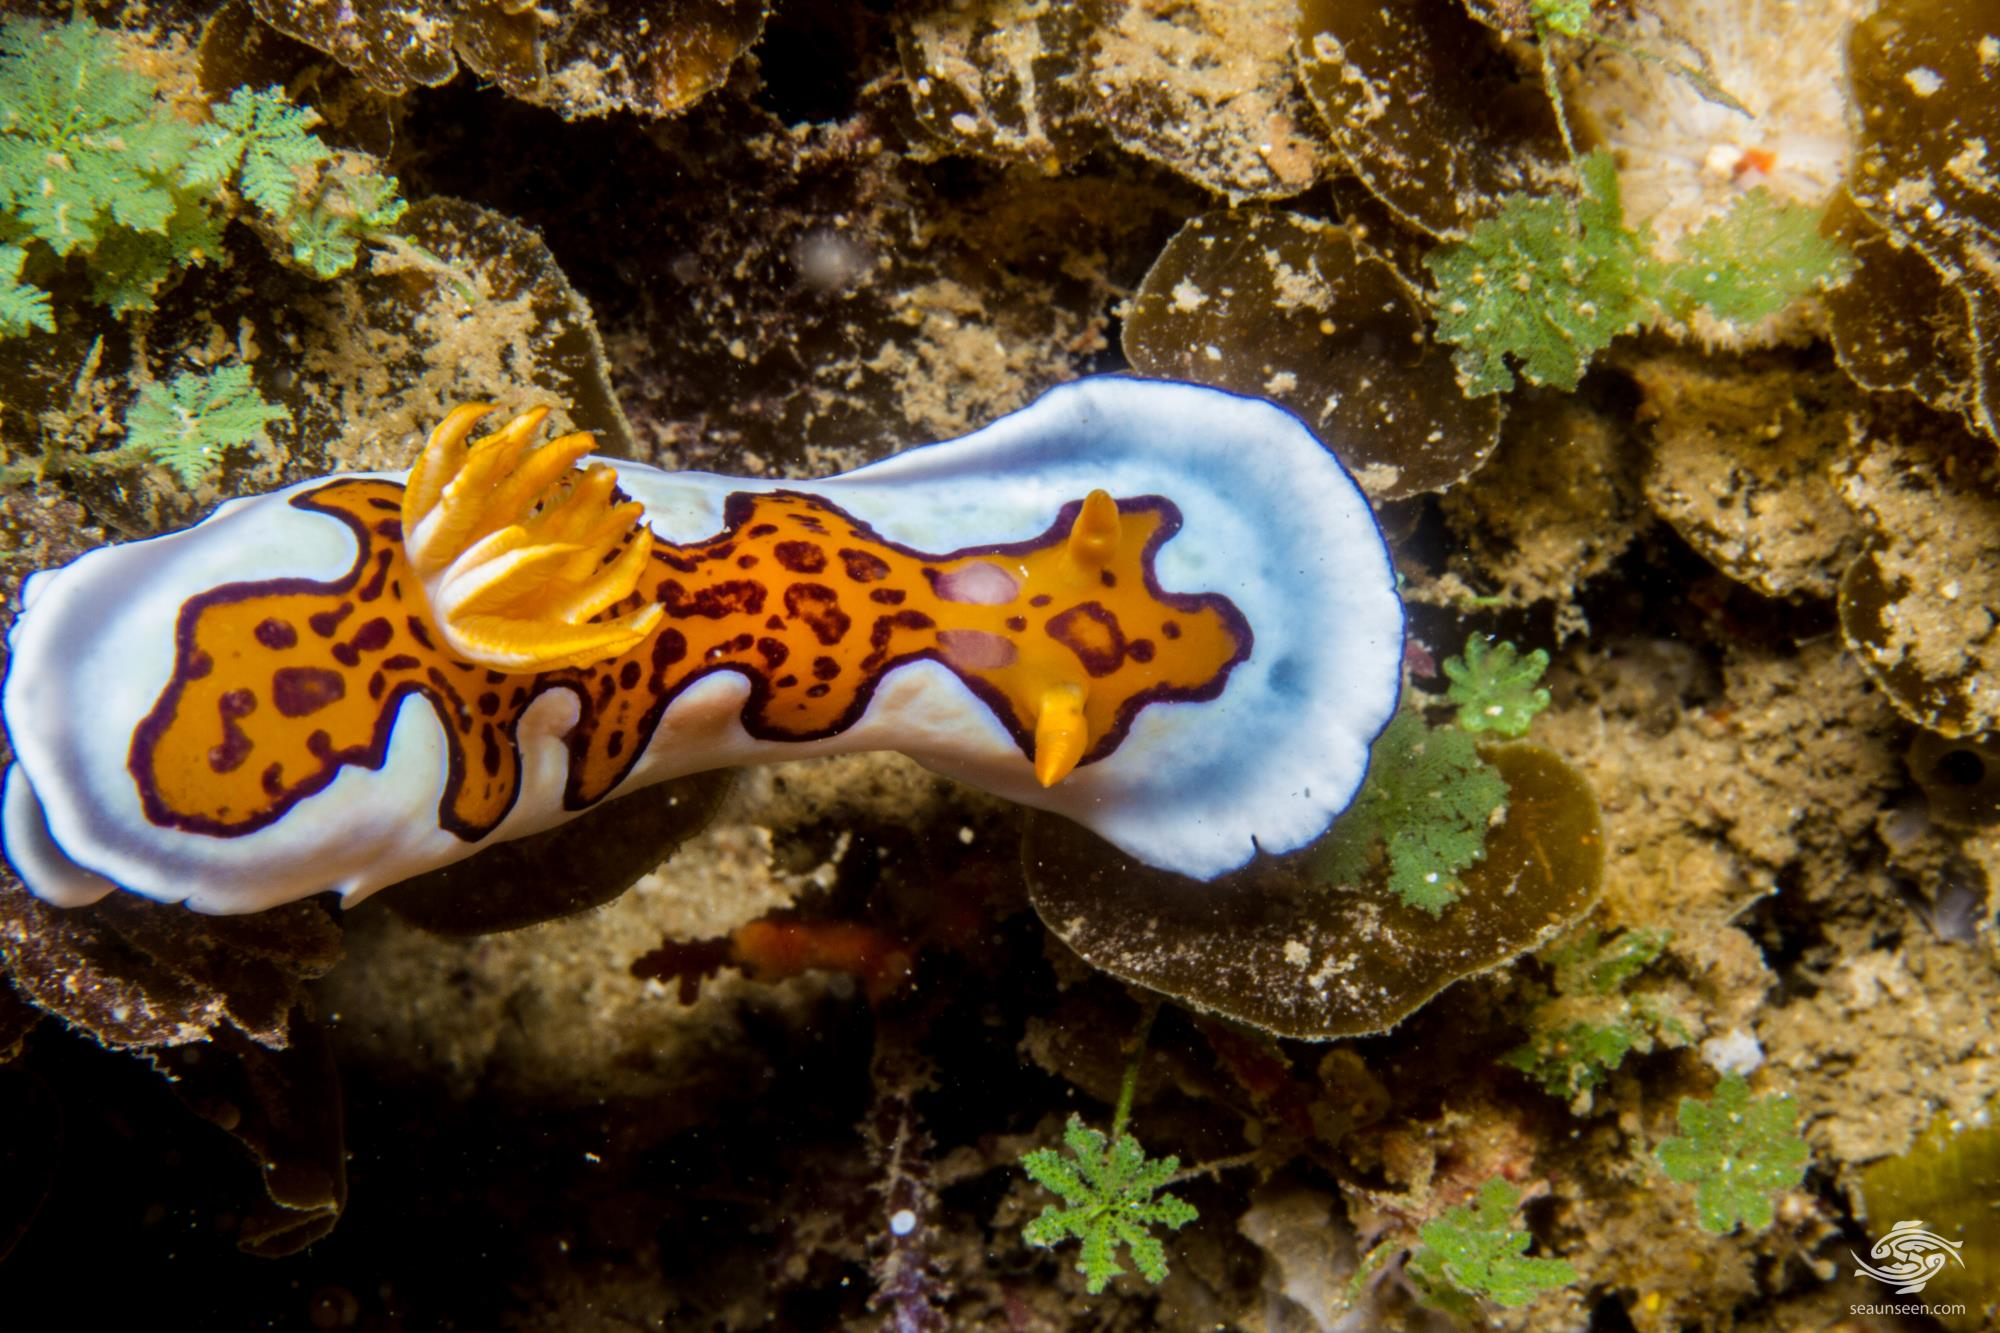 oniobranchus gleniei, previously known as Chromodoris gleniei